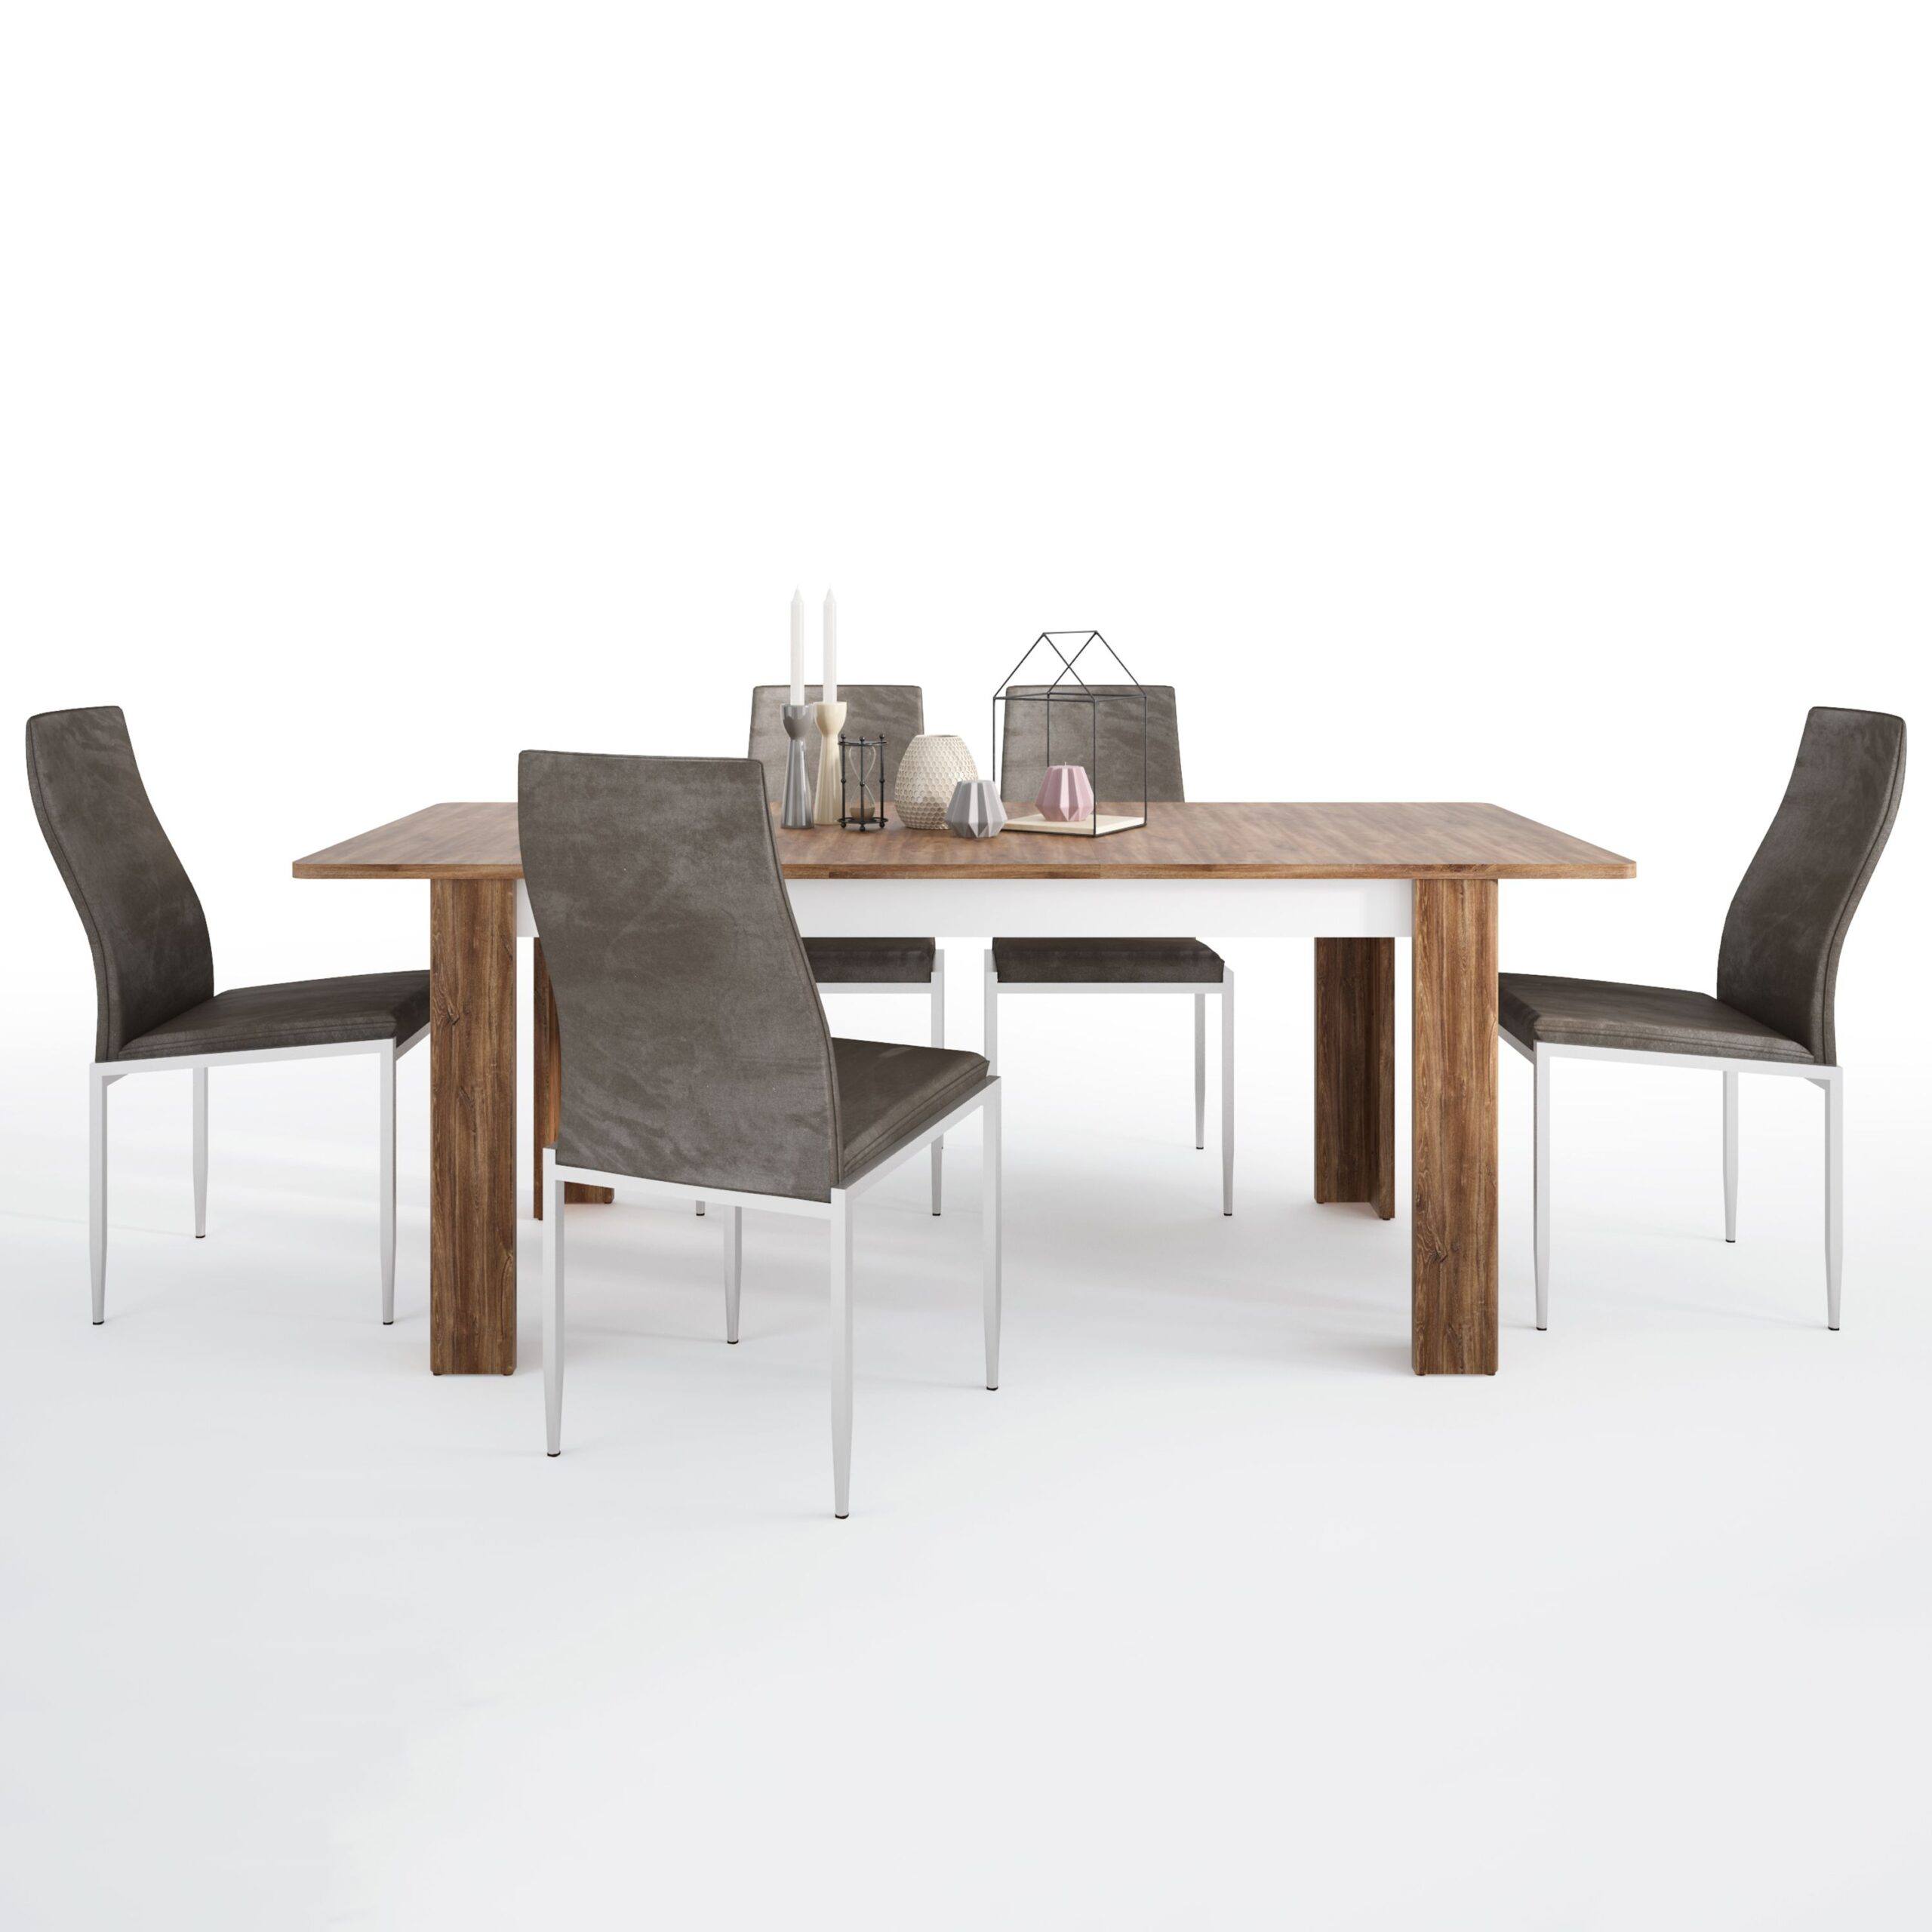 Delly Dining set package Delly extending dining table + 4 Lillie High Back Chair Dark Brown.